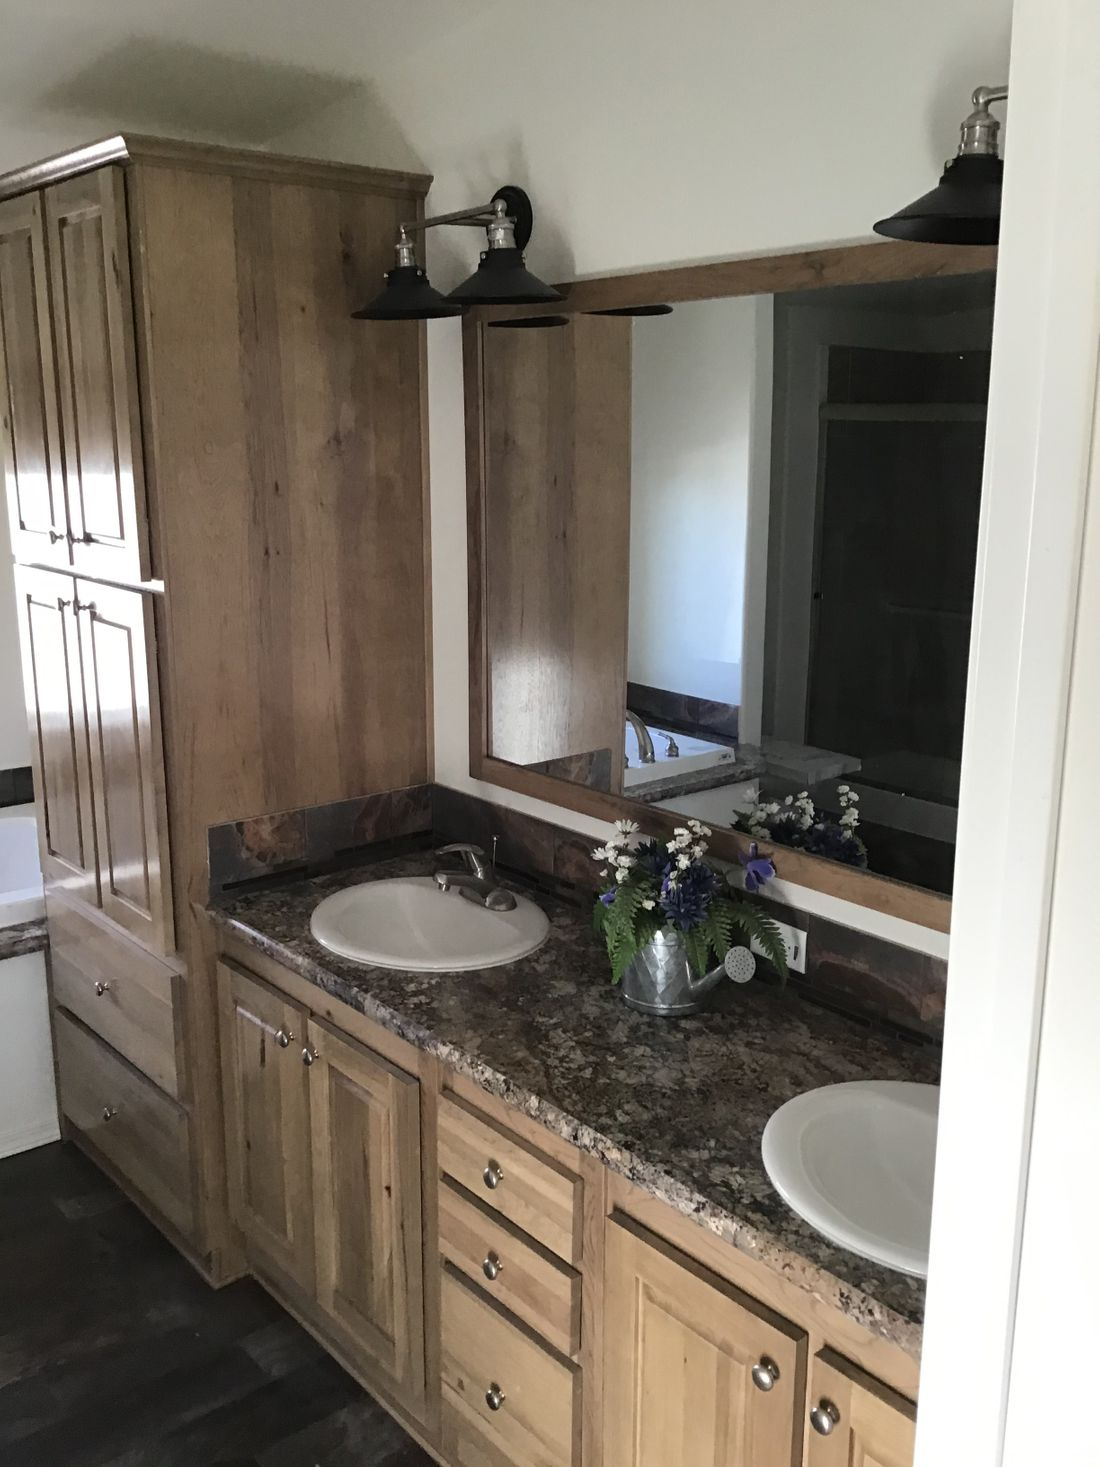 The 9593S         WASHINGTON Master Bathroom. This Manufactured Mobile Home features 3 bedrooms and 3 baths.